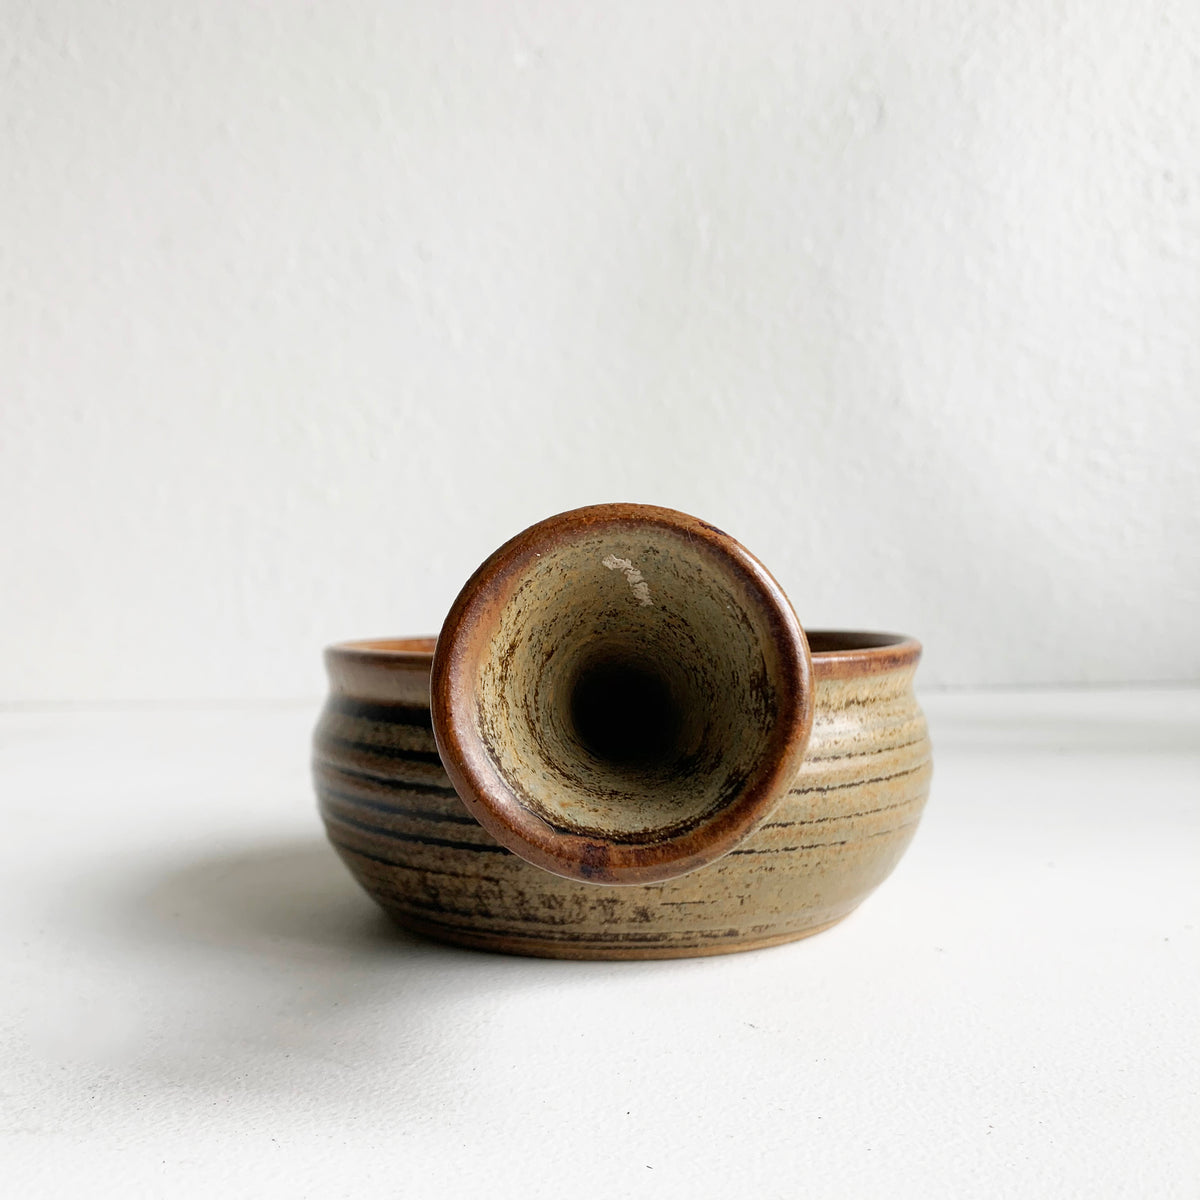 Pair of Tan & Brown Tea Bowls